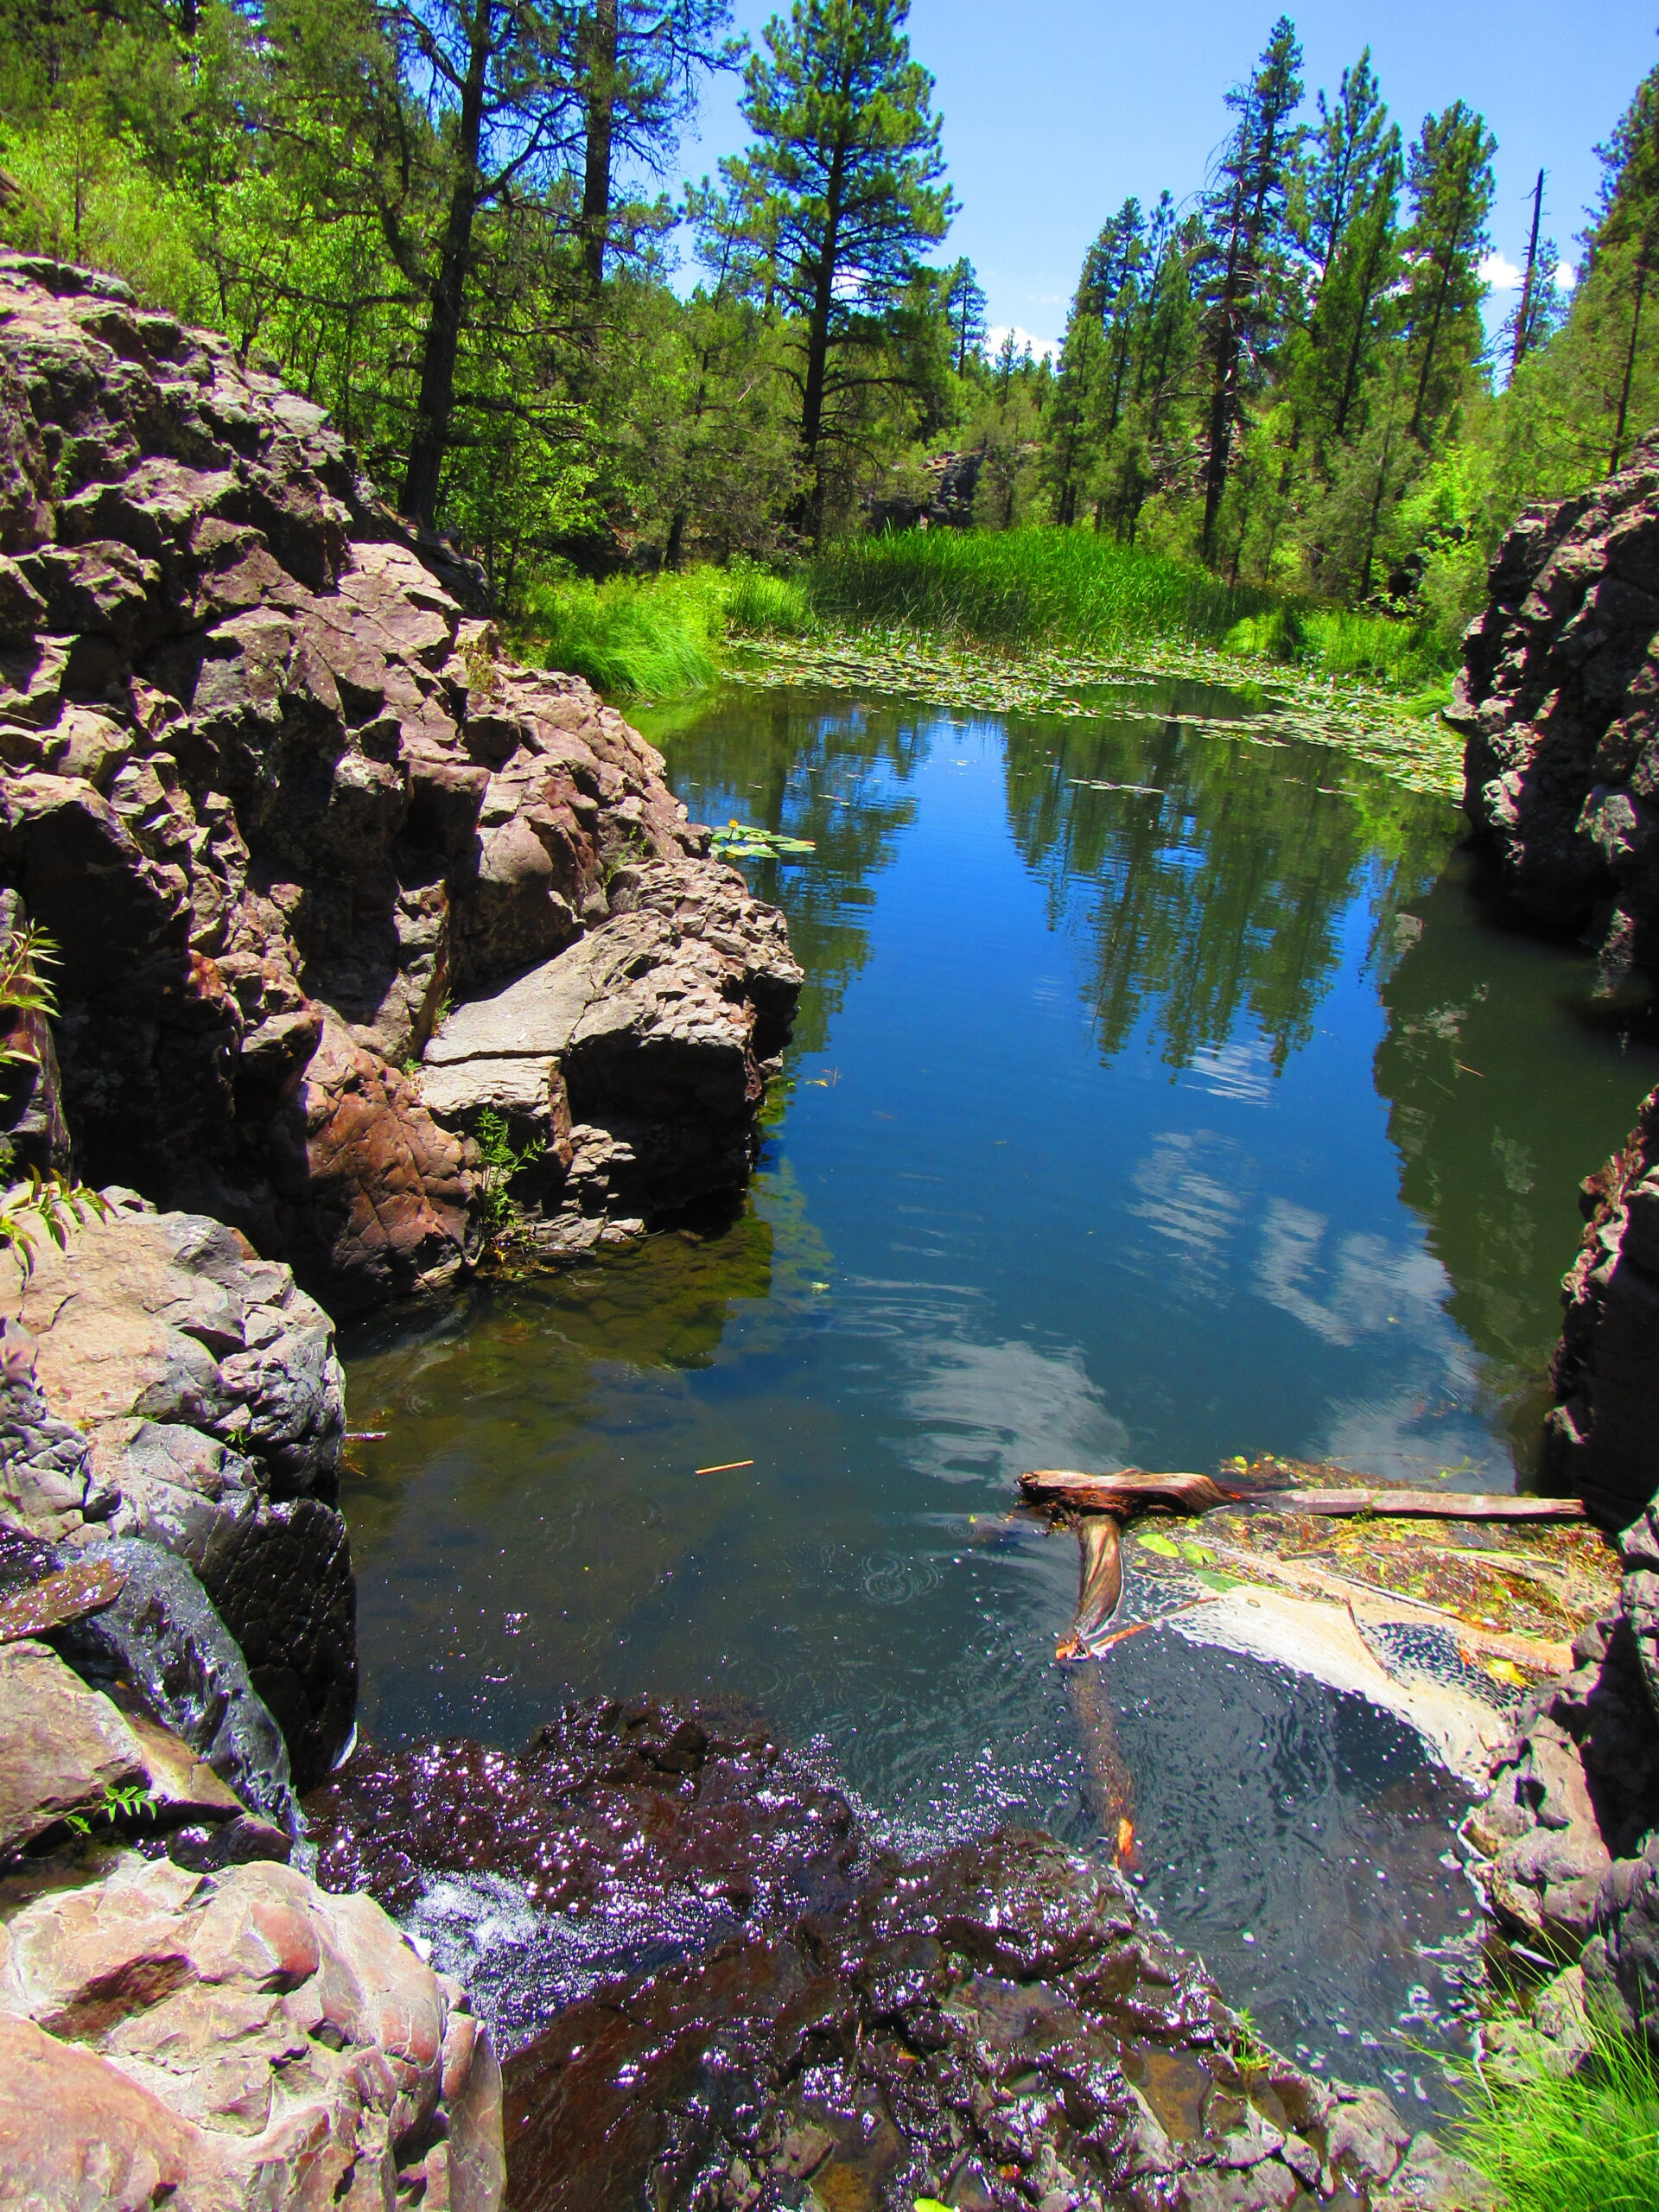 sycamore canyon with water